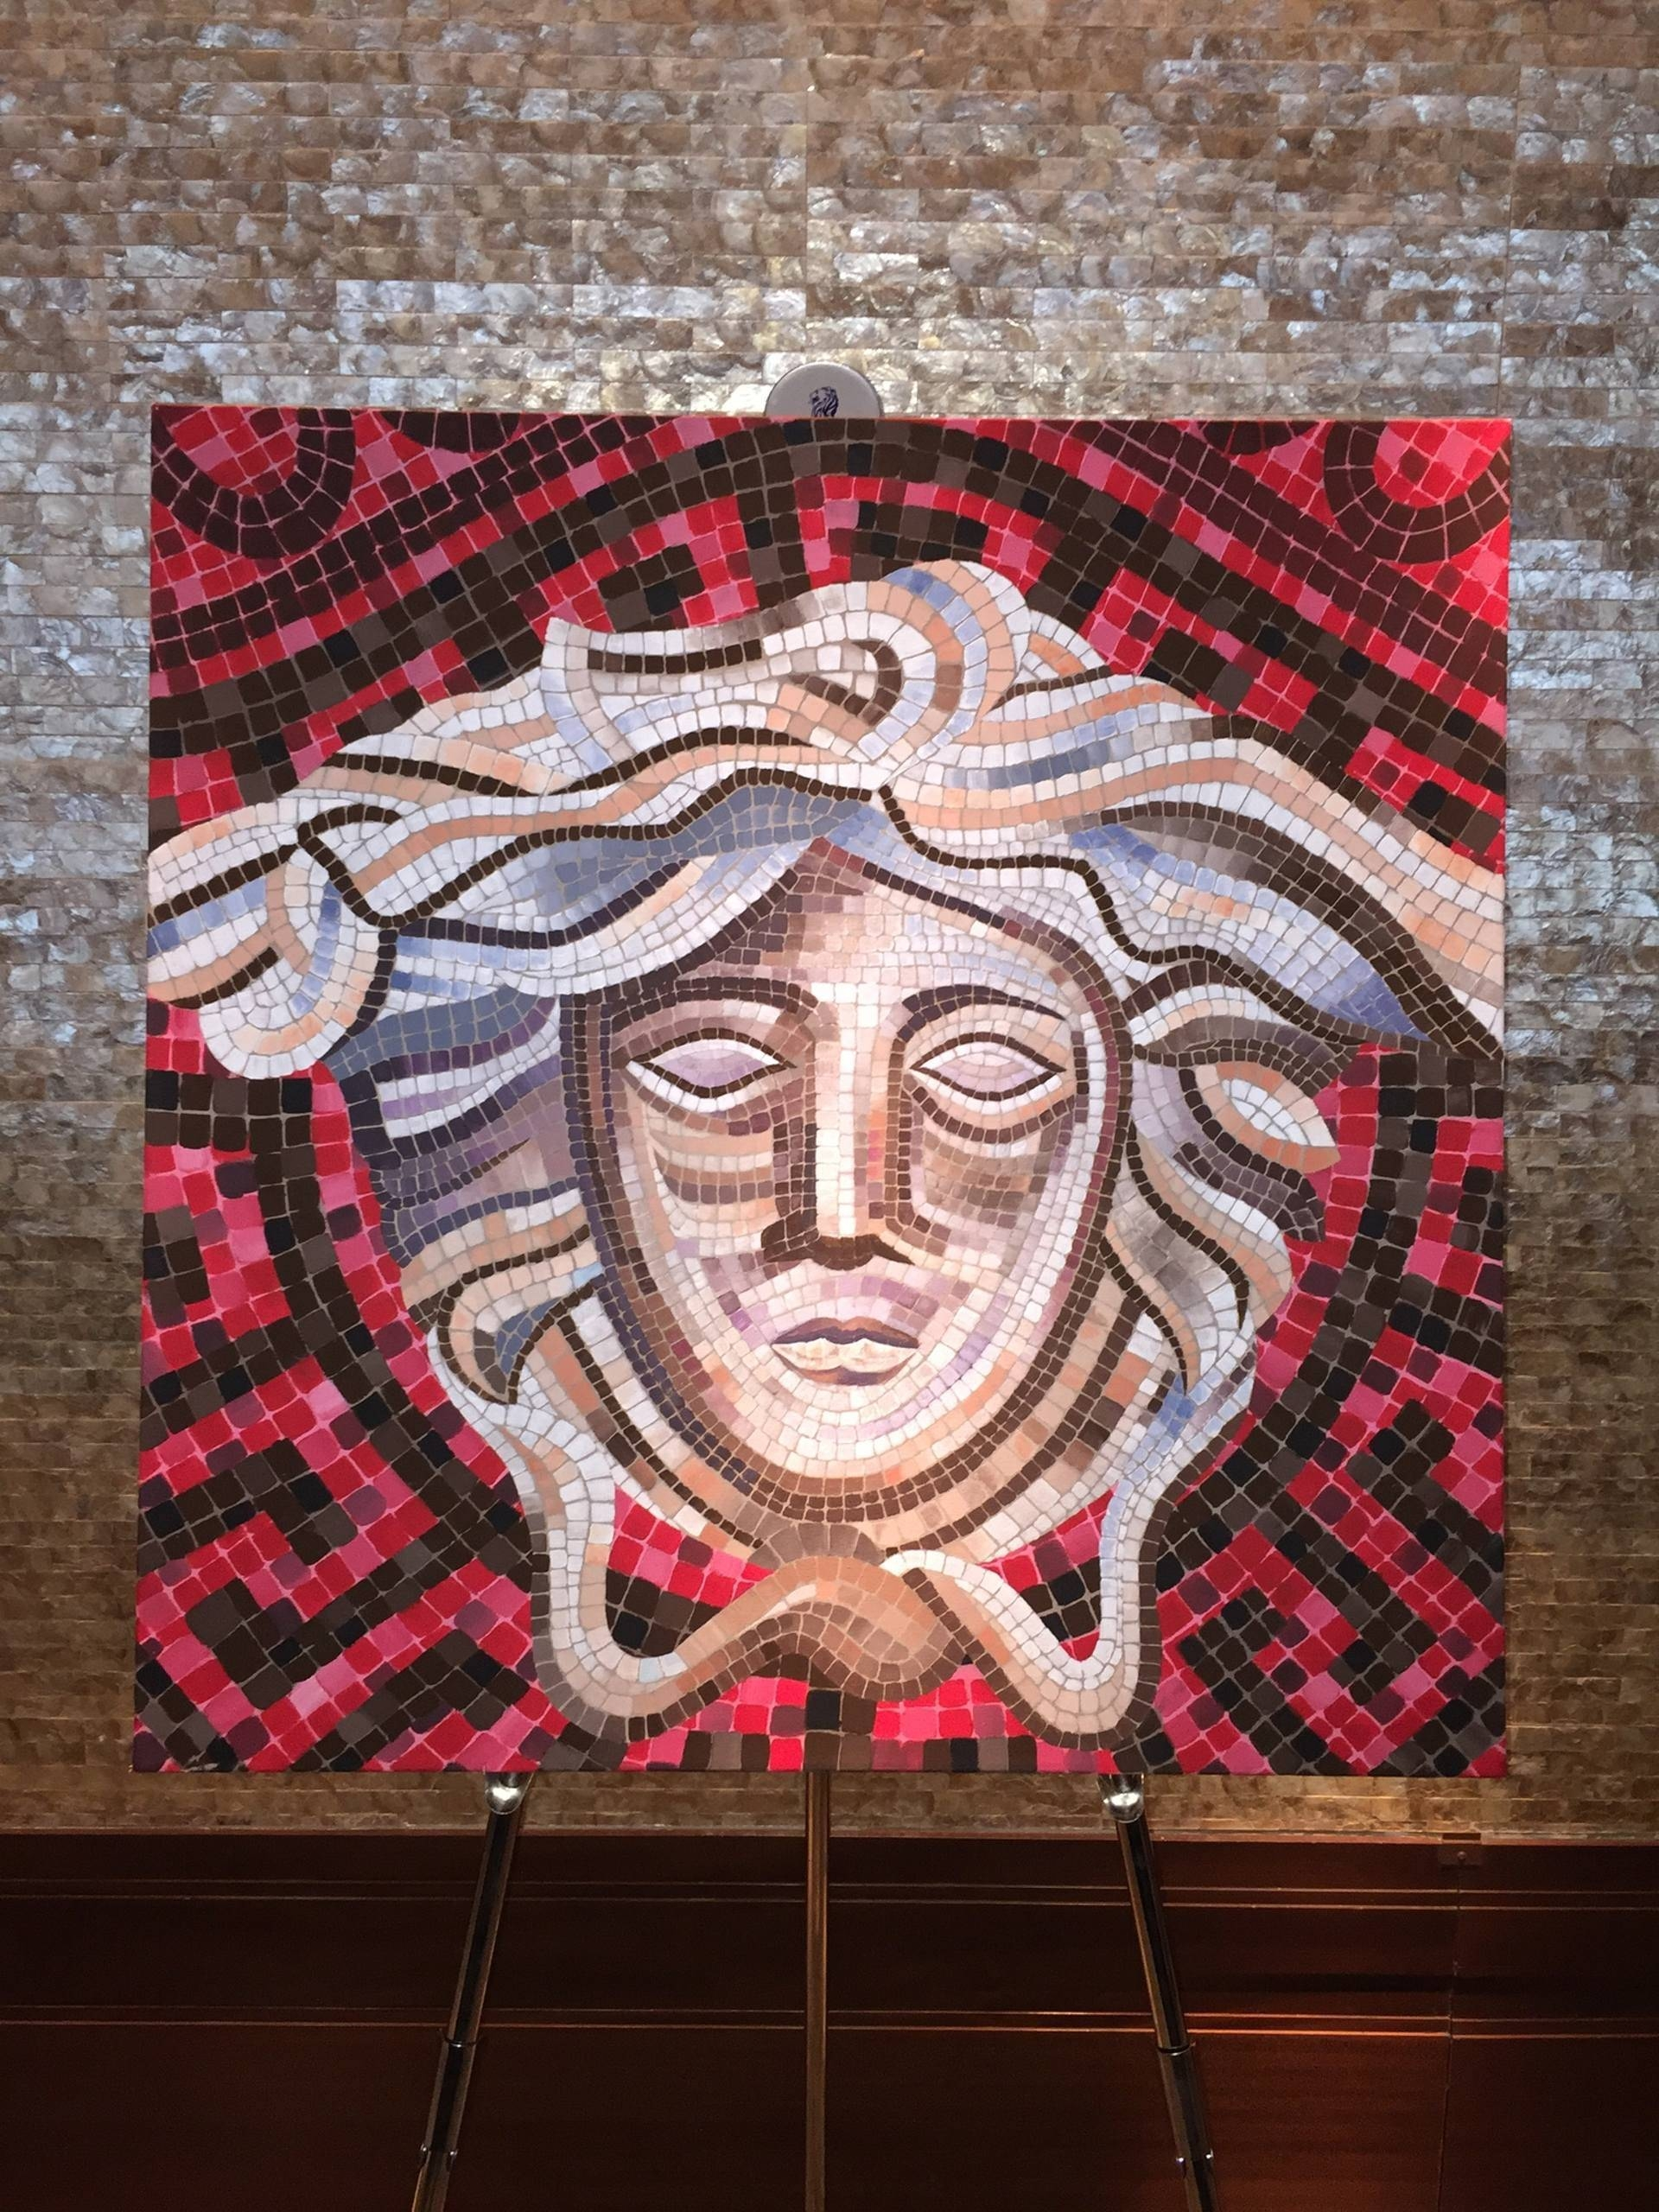 Saatchi Art: Versace Medusa Mosaic Style Painting Painting Within Current Versace Wall Art (View 4 of 20)